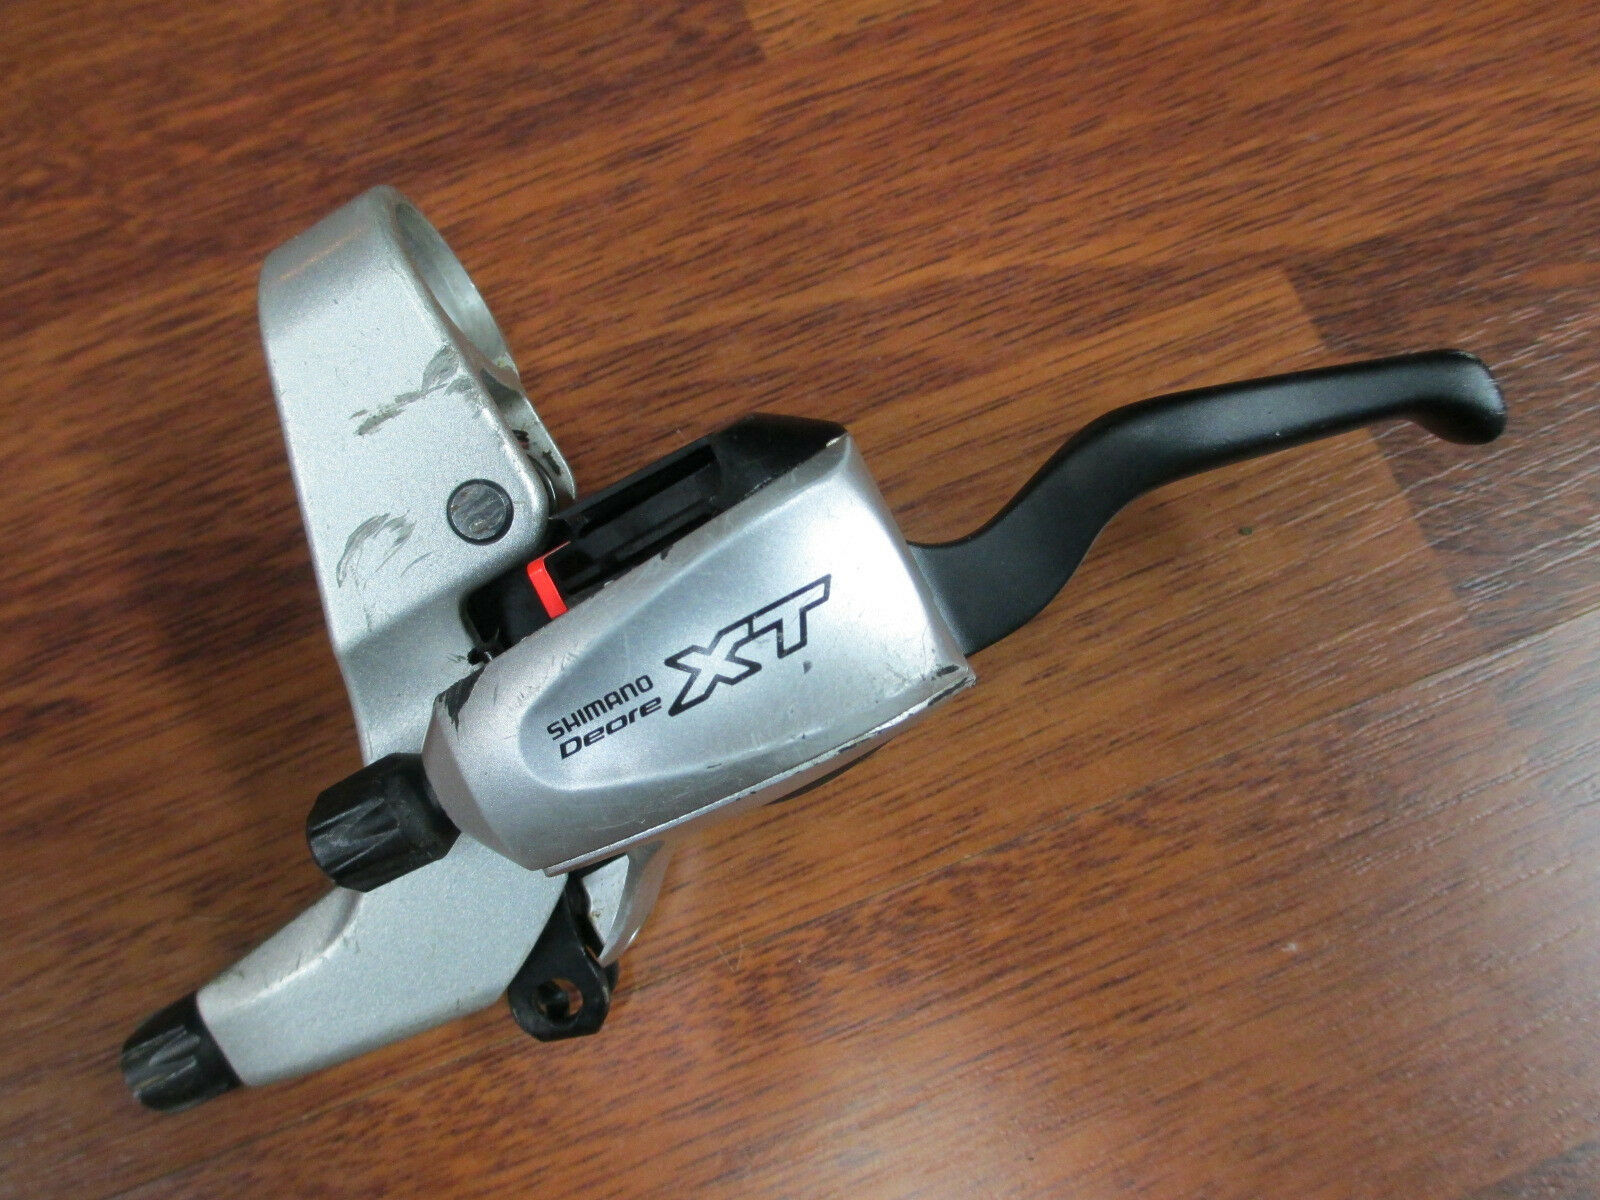 SHIMANO XT ST M760 LEFT  FRONT DOUBLE OR TRIPLE INTEGRATED SHIFTER BRAKE LEVER  top brand